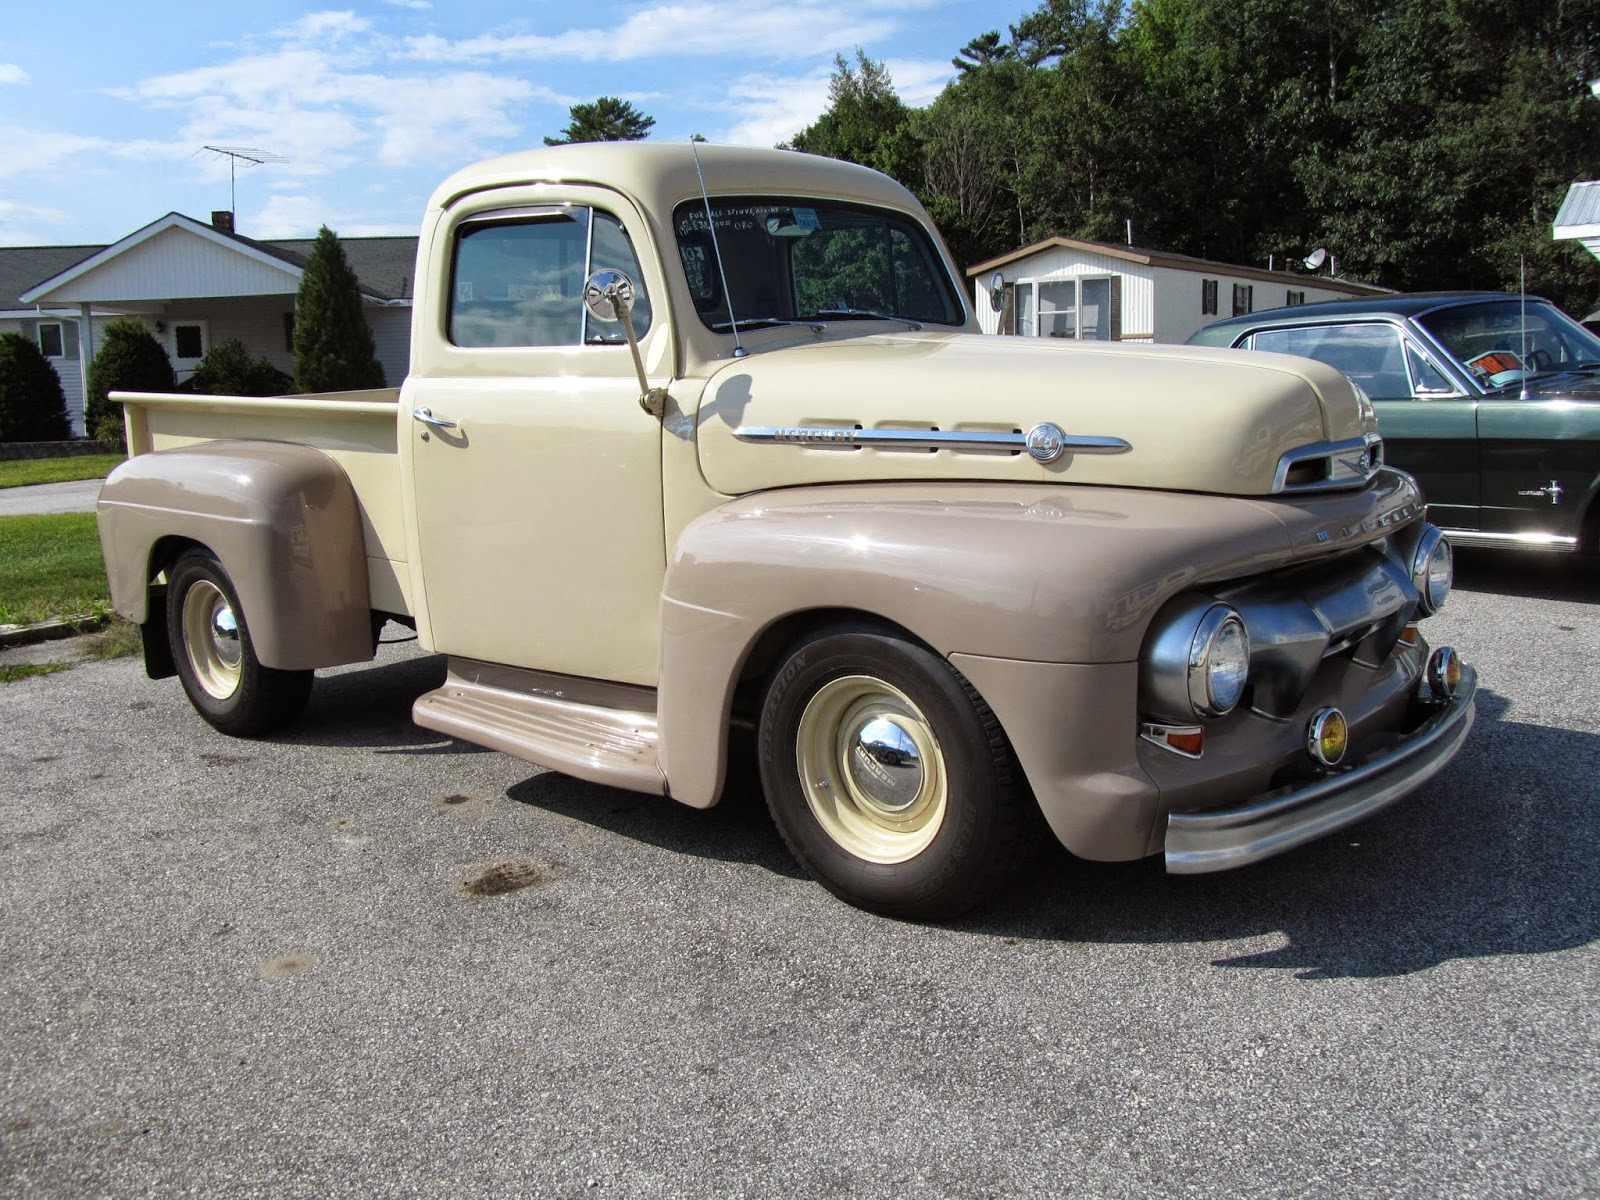 The truck was for sale at kool kustoms in orland maine mercury trucks were sold in canada caught one in nova scotia a m 3 a while back